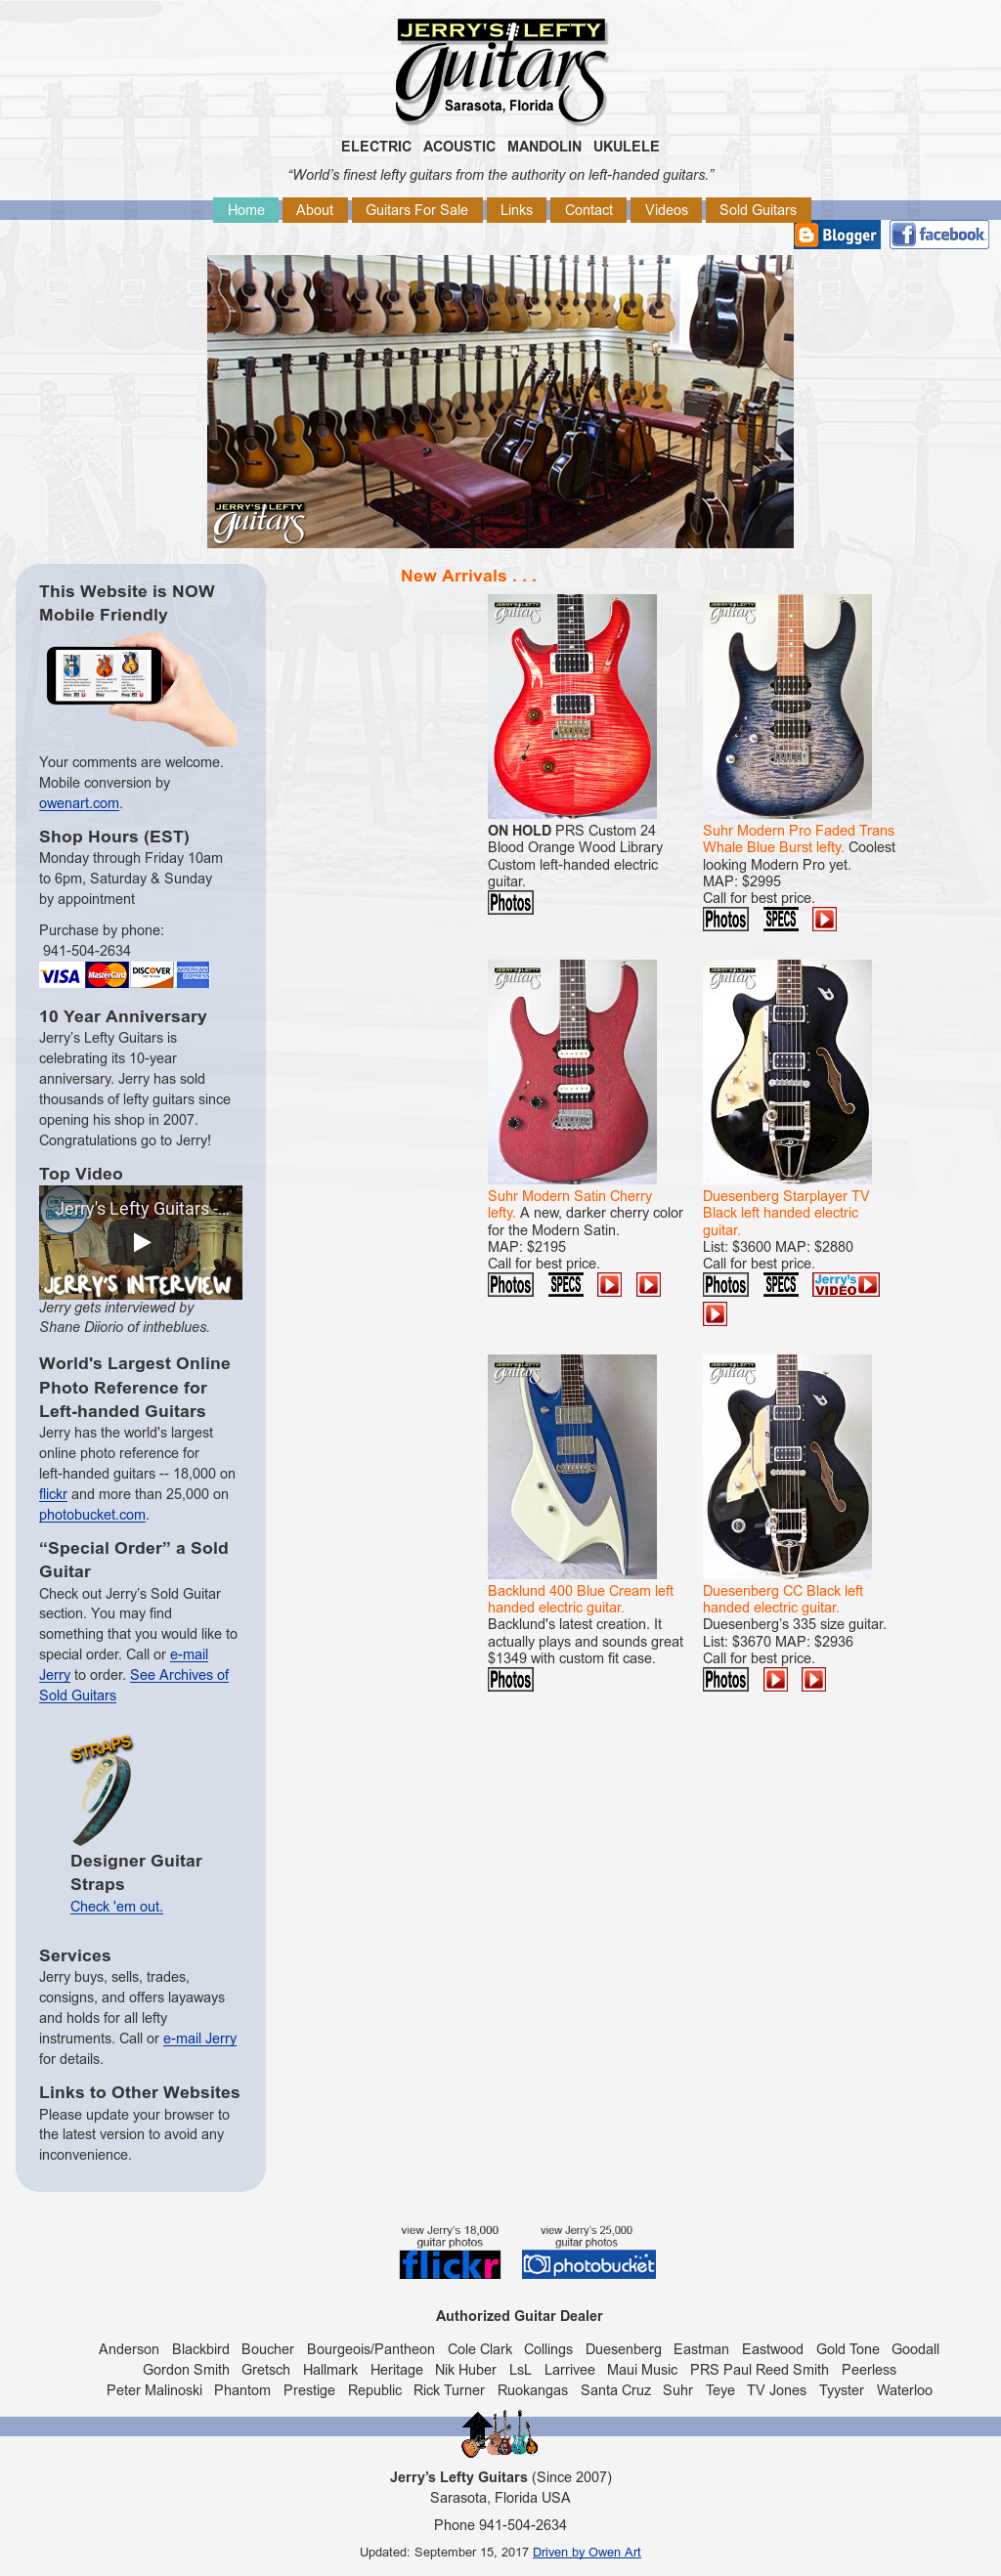 Jerry's Lefty Guitars Competitors, Revenue and Employees - Owler